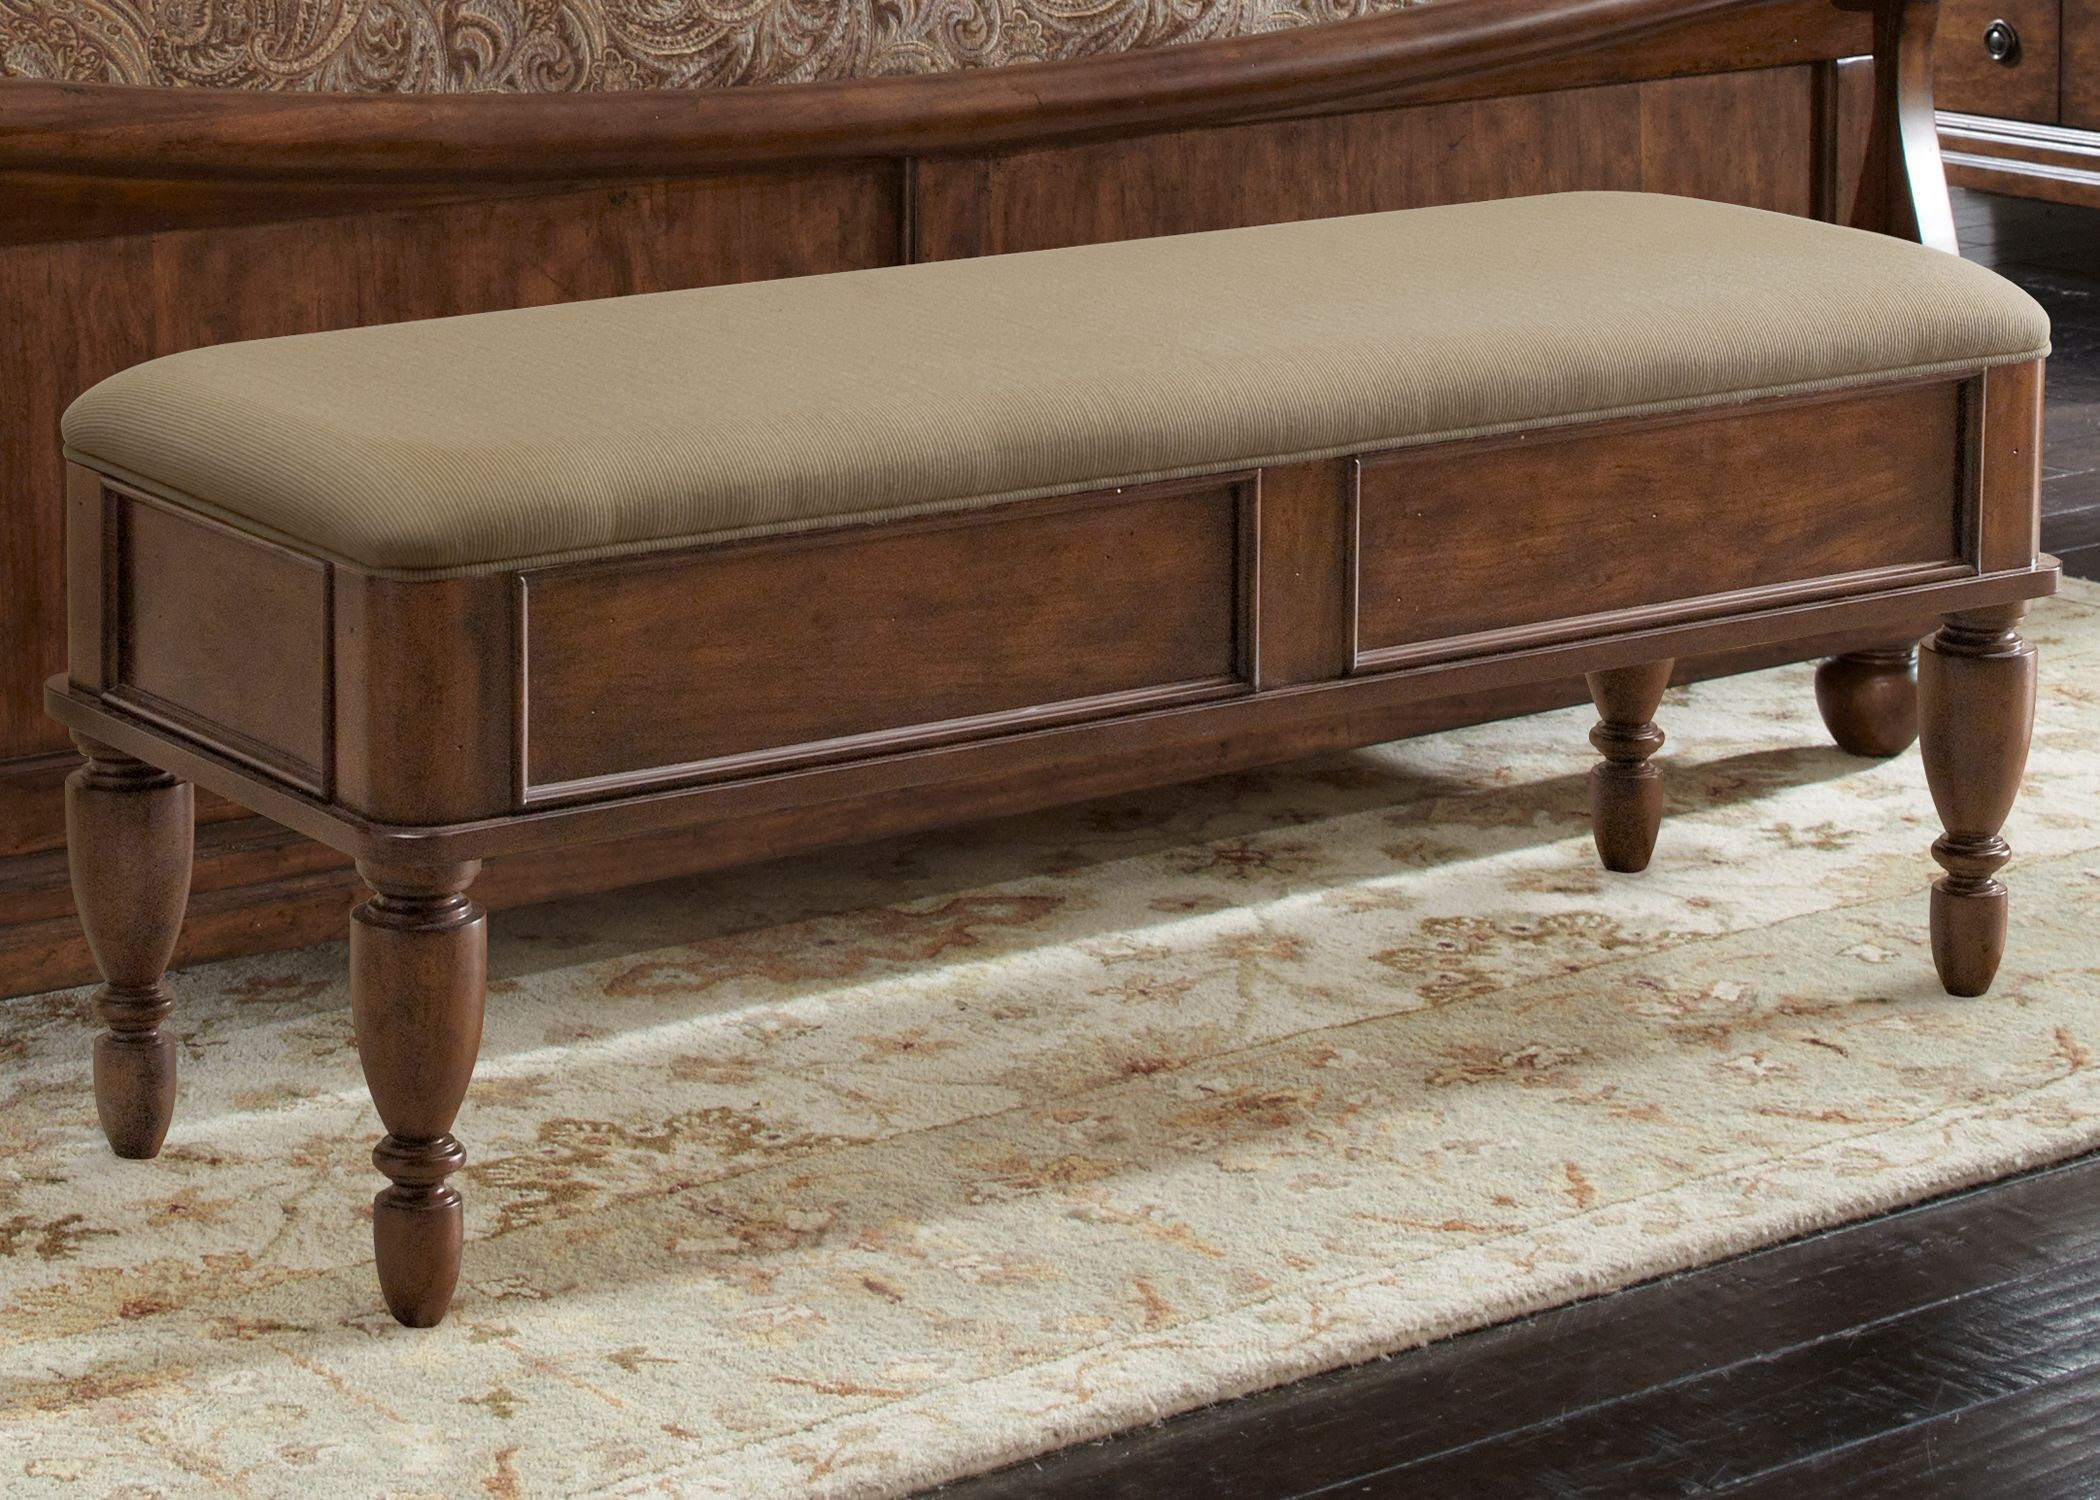 rustic traditions bed bench from liberty 589 br47